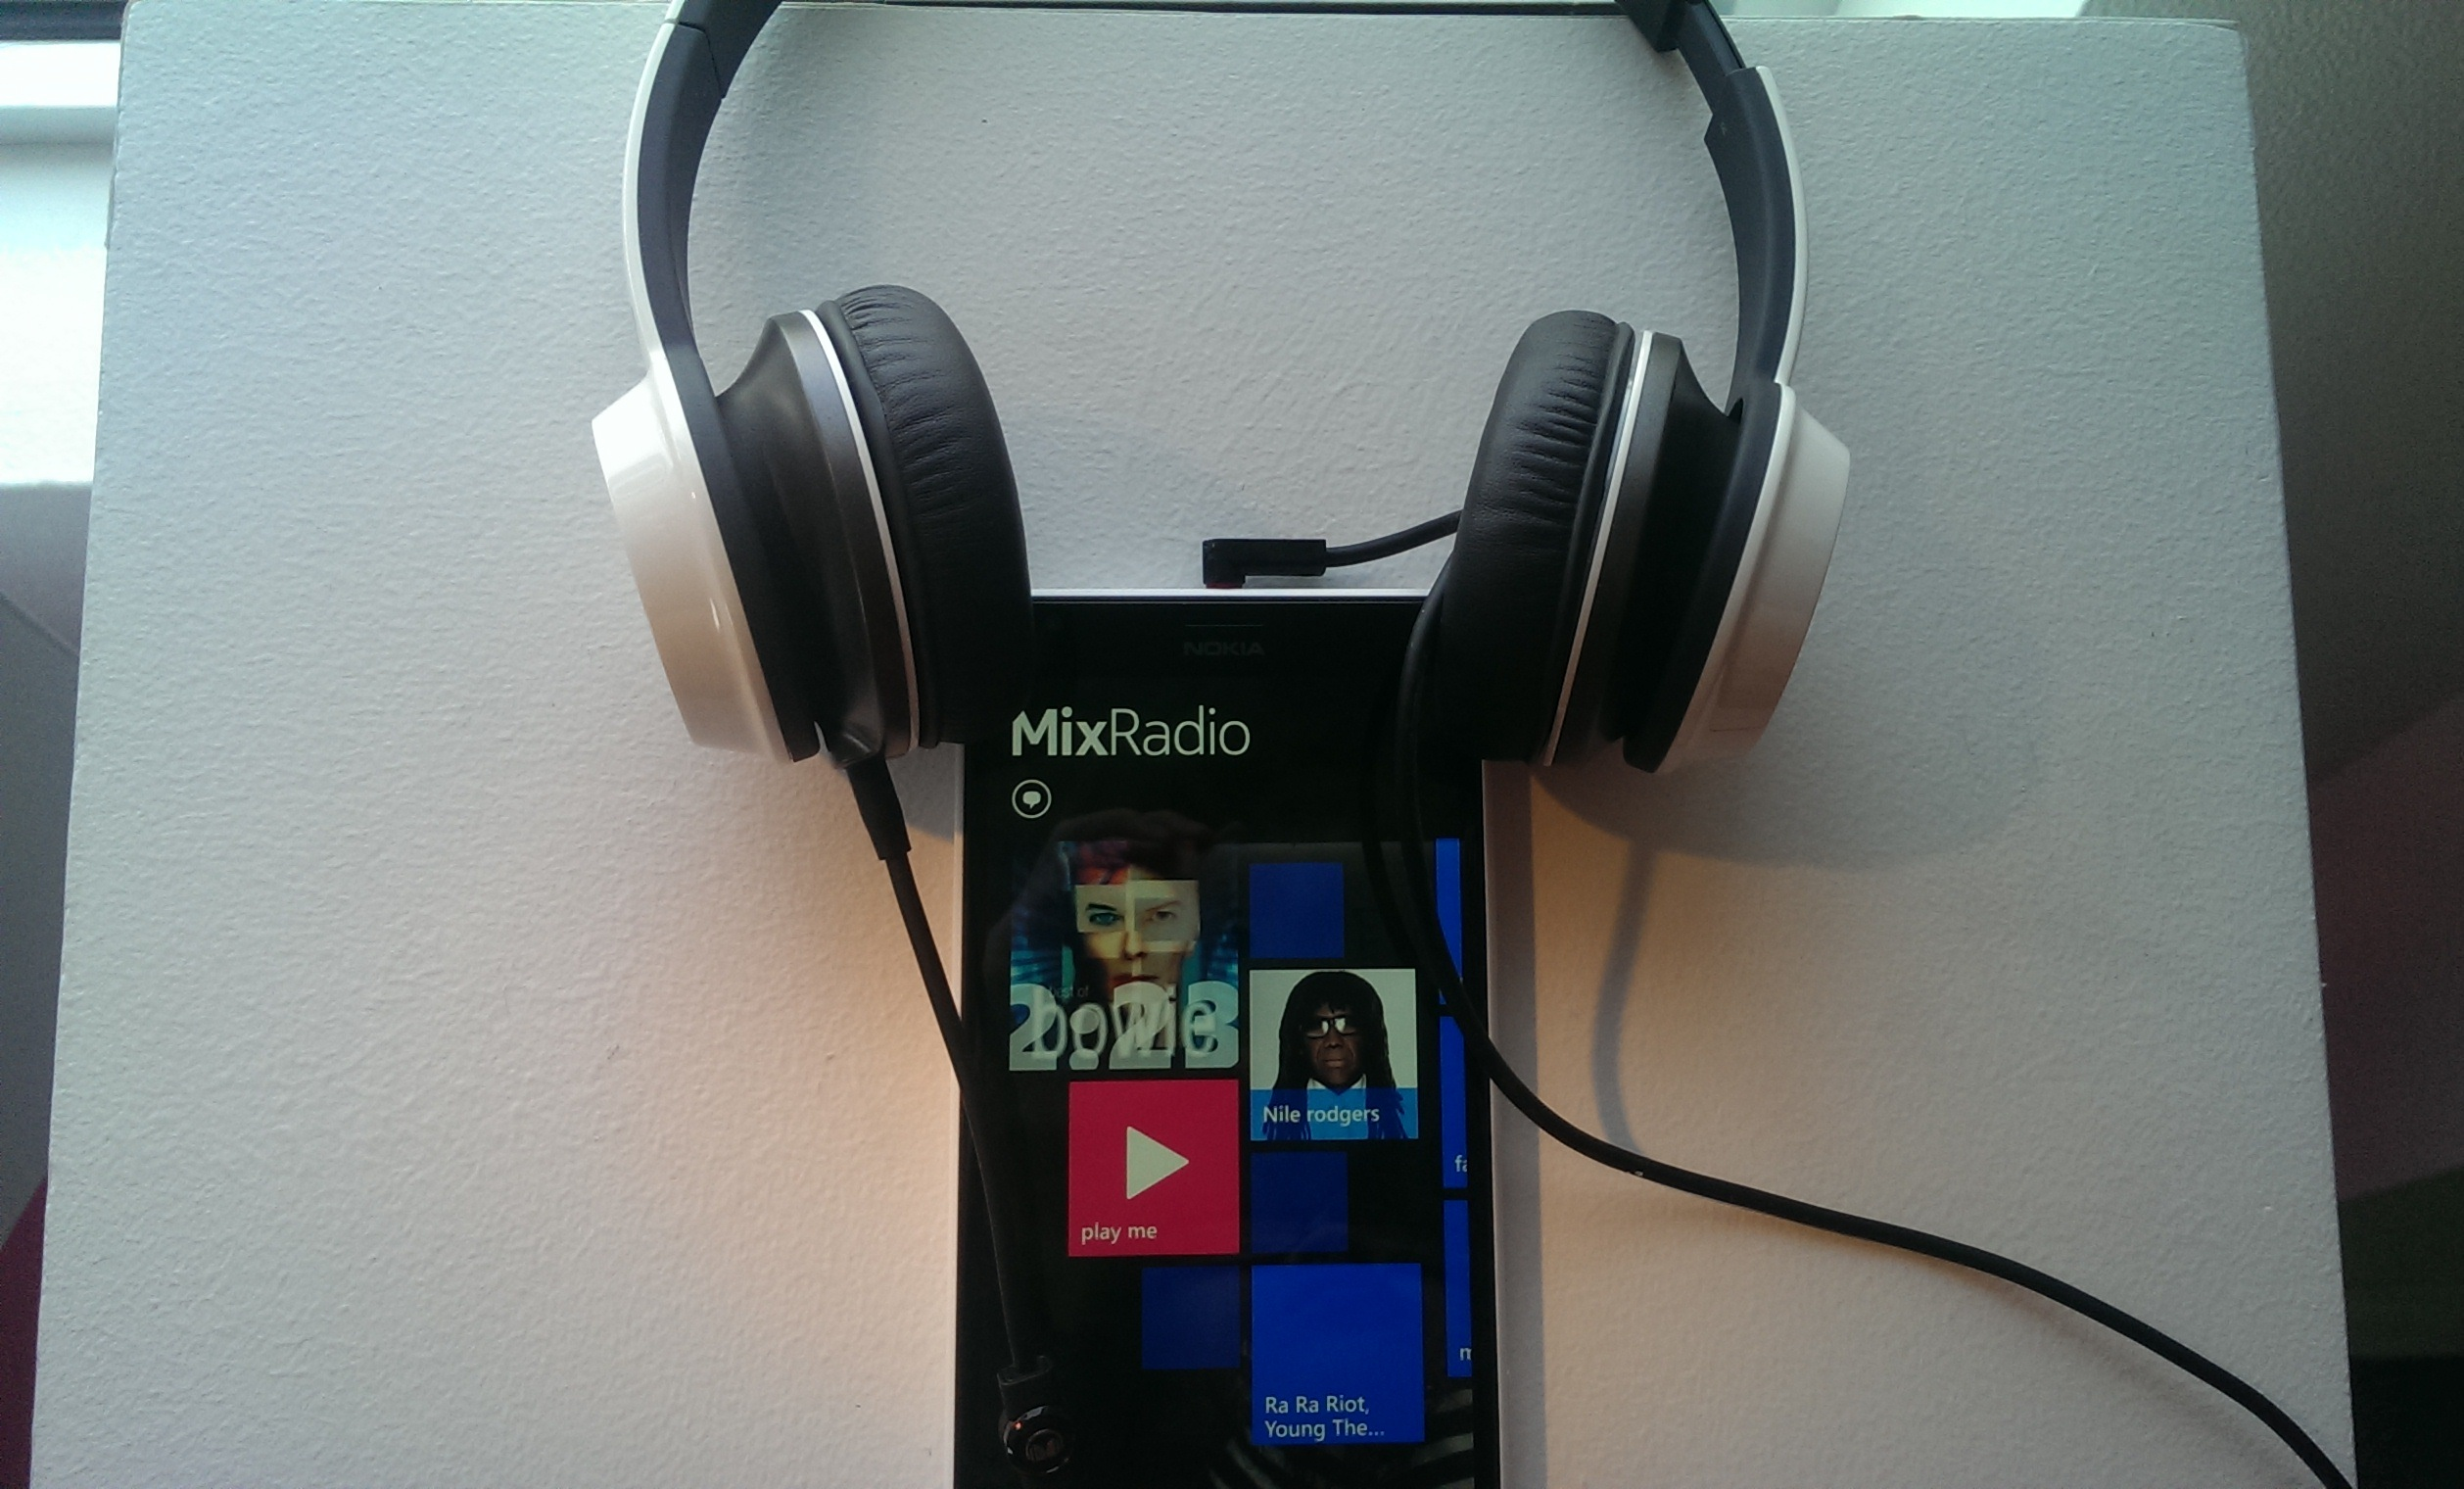 Hands on with Nokia MixRadio app: Nokia's answer to ad-free music streaming